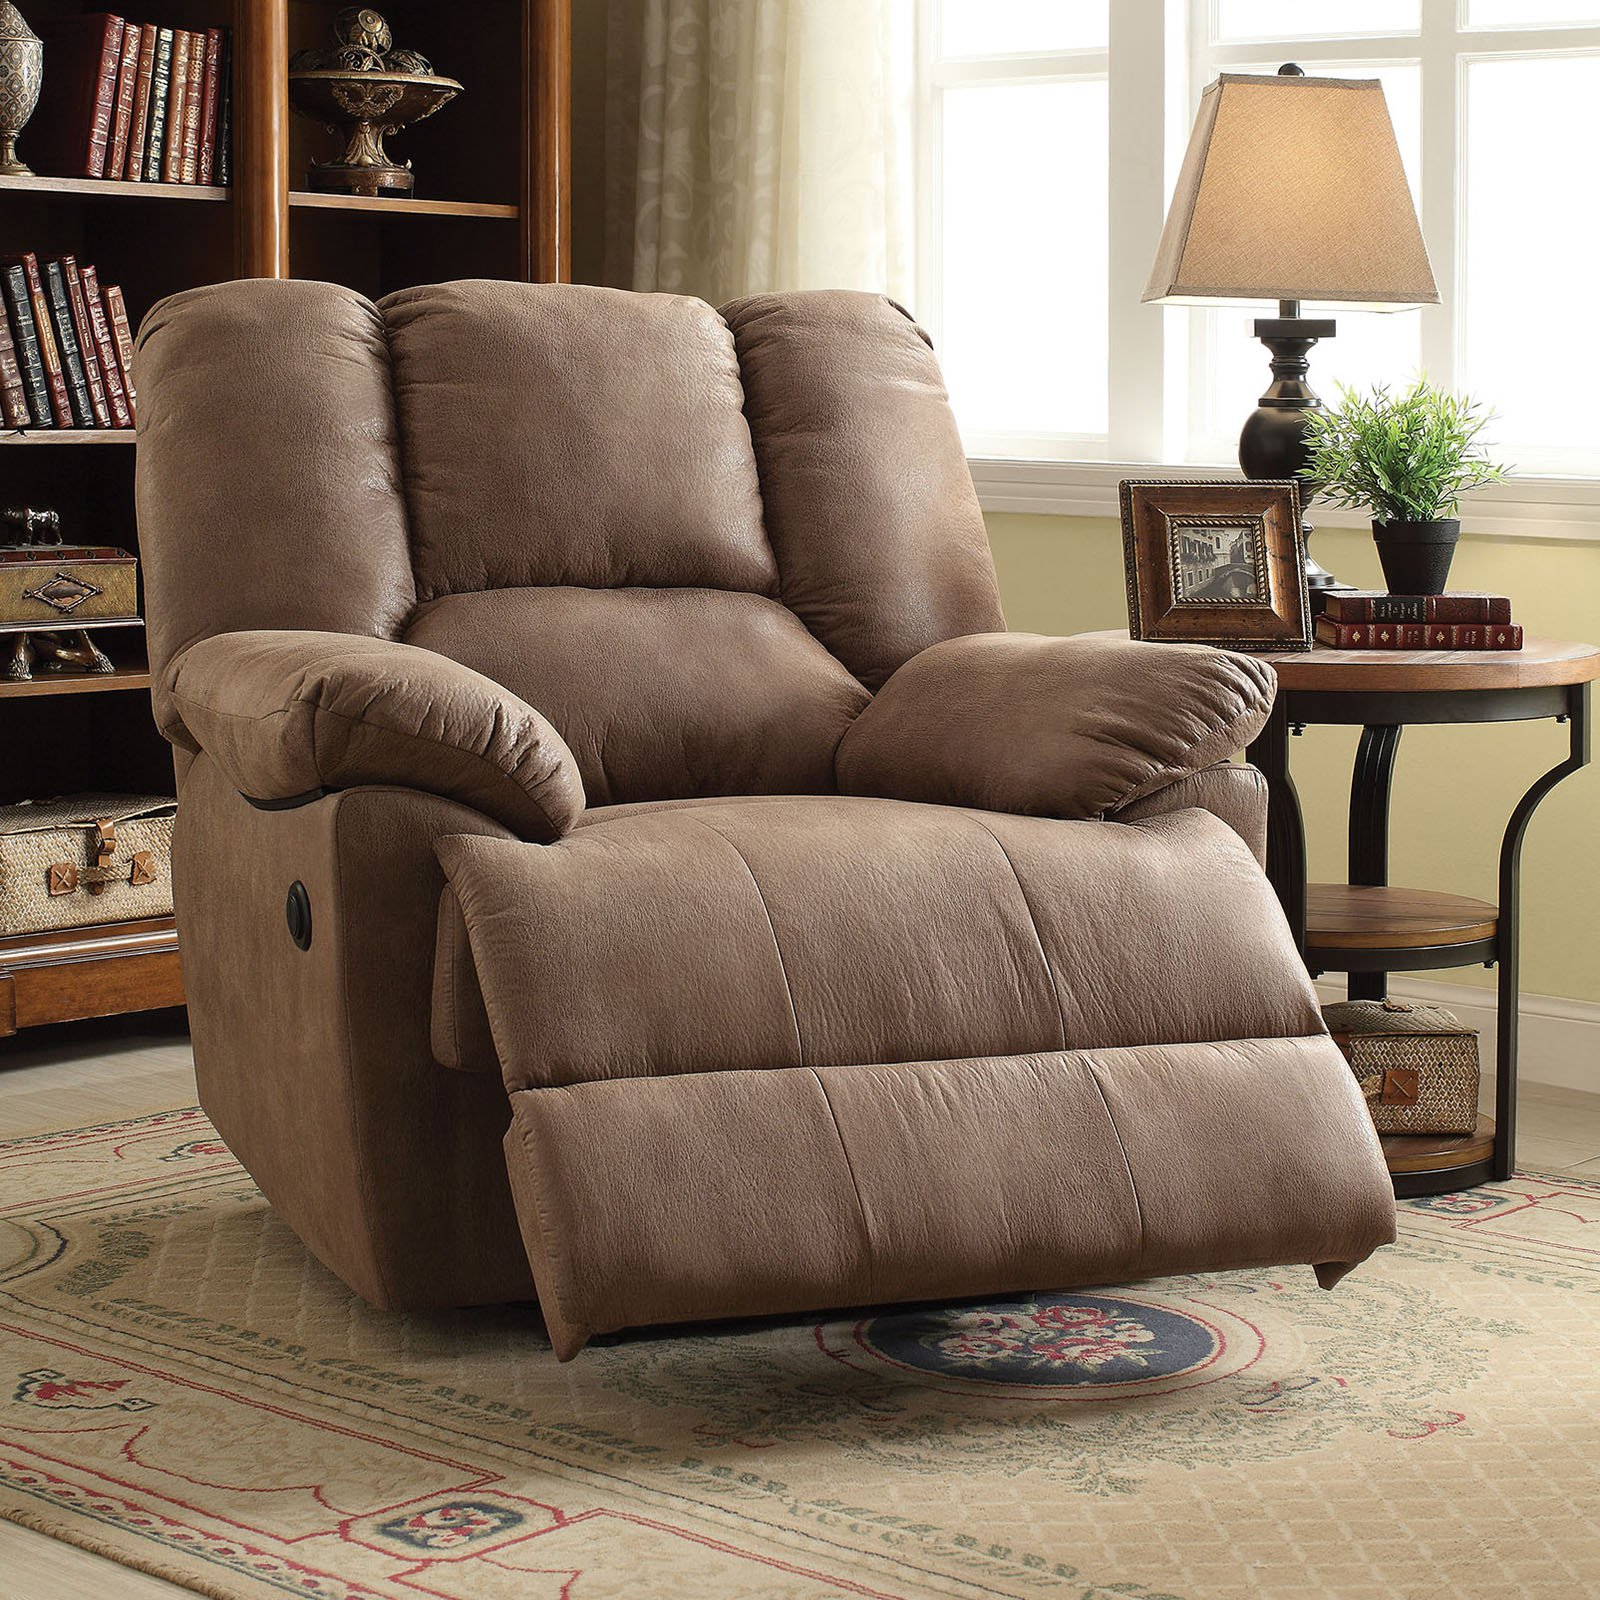 ACME Oliver Power Recliner, Brown Polished Microfiber by Overstock